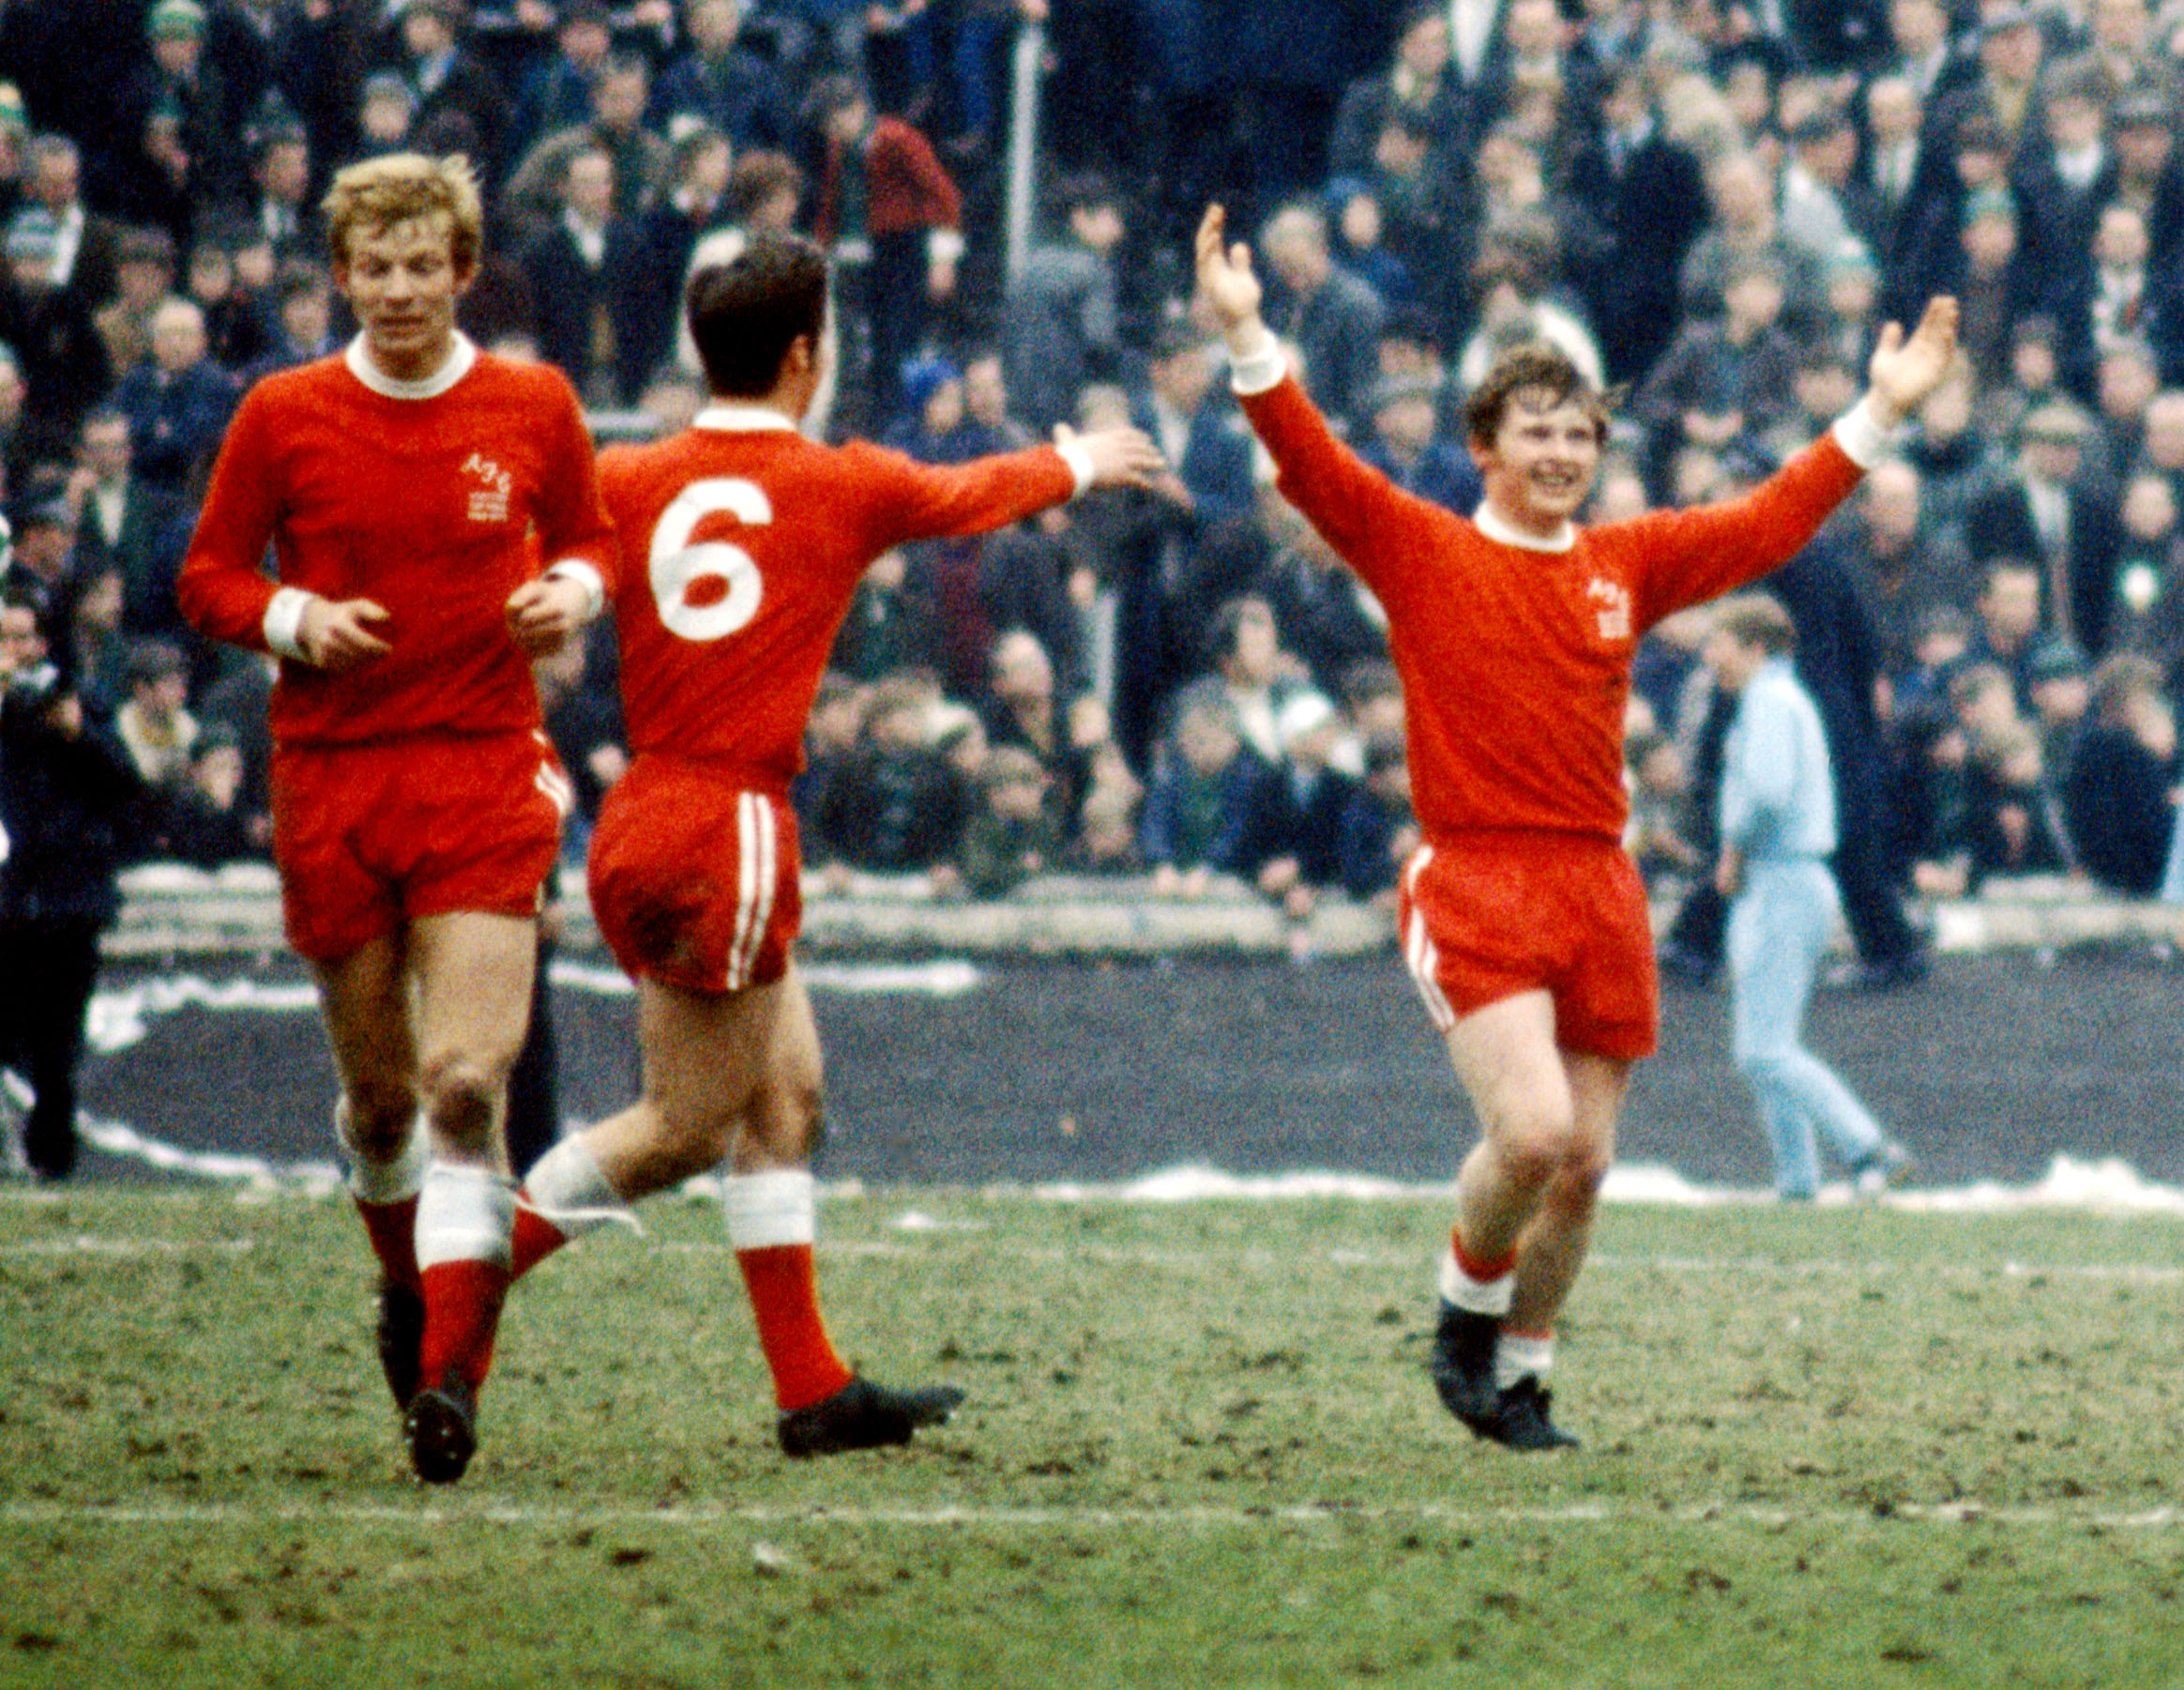 Aberdeen's Joe Harper (right) celebrates scoring in the 1970 Scottish Cup final.